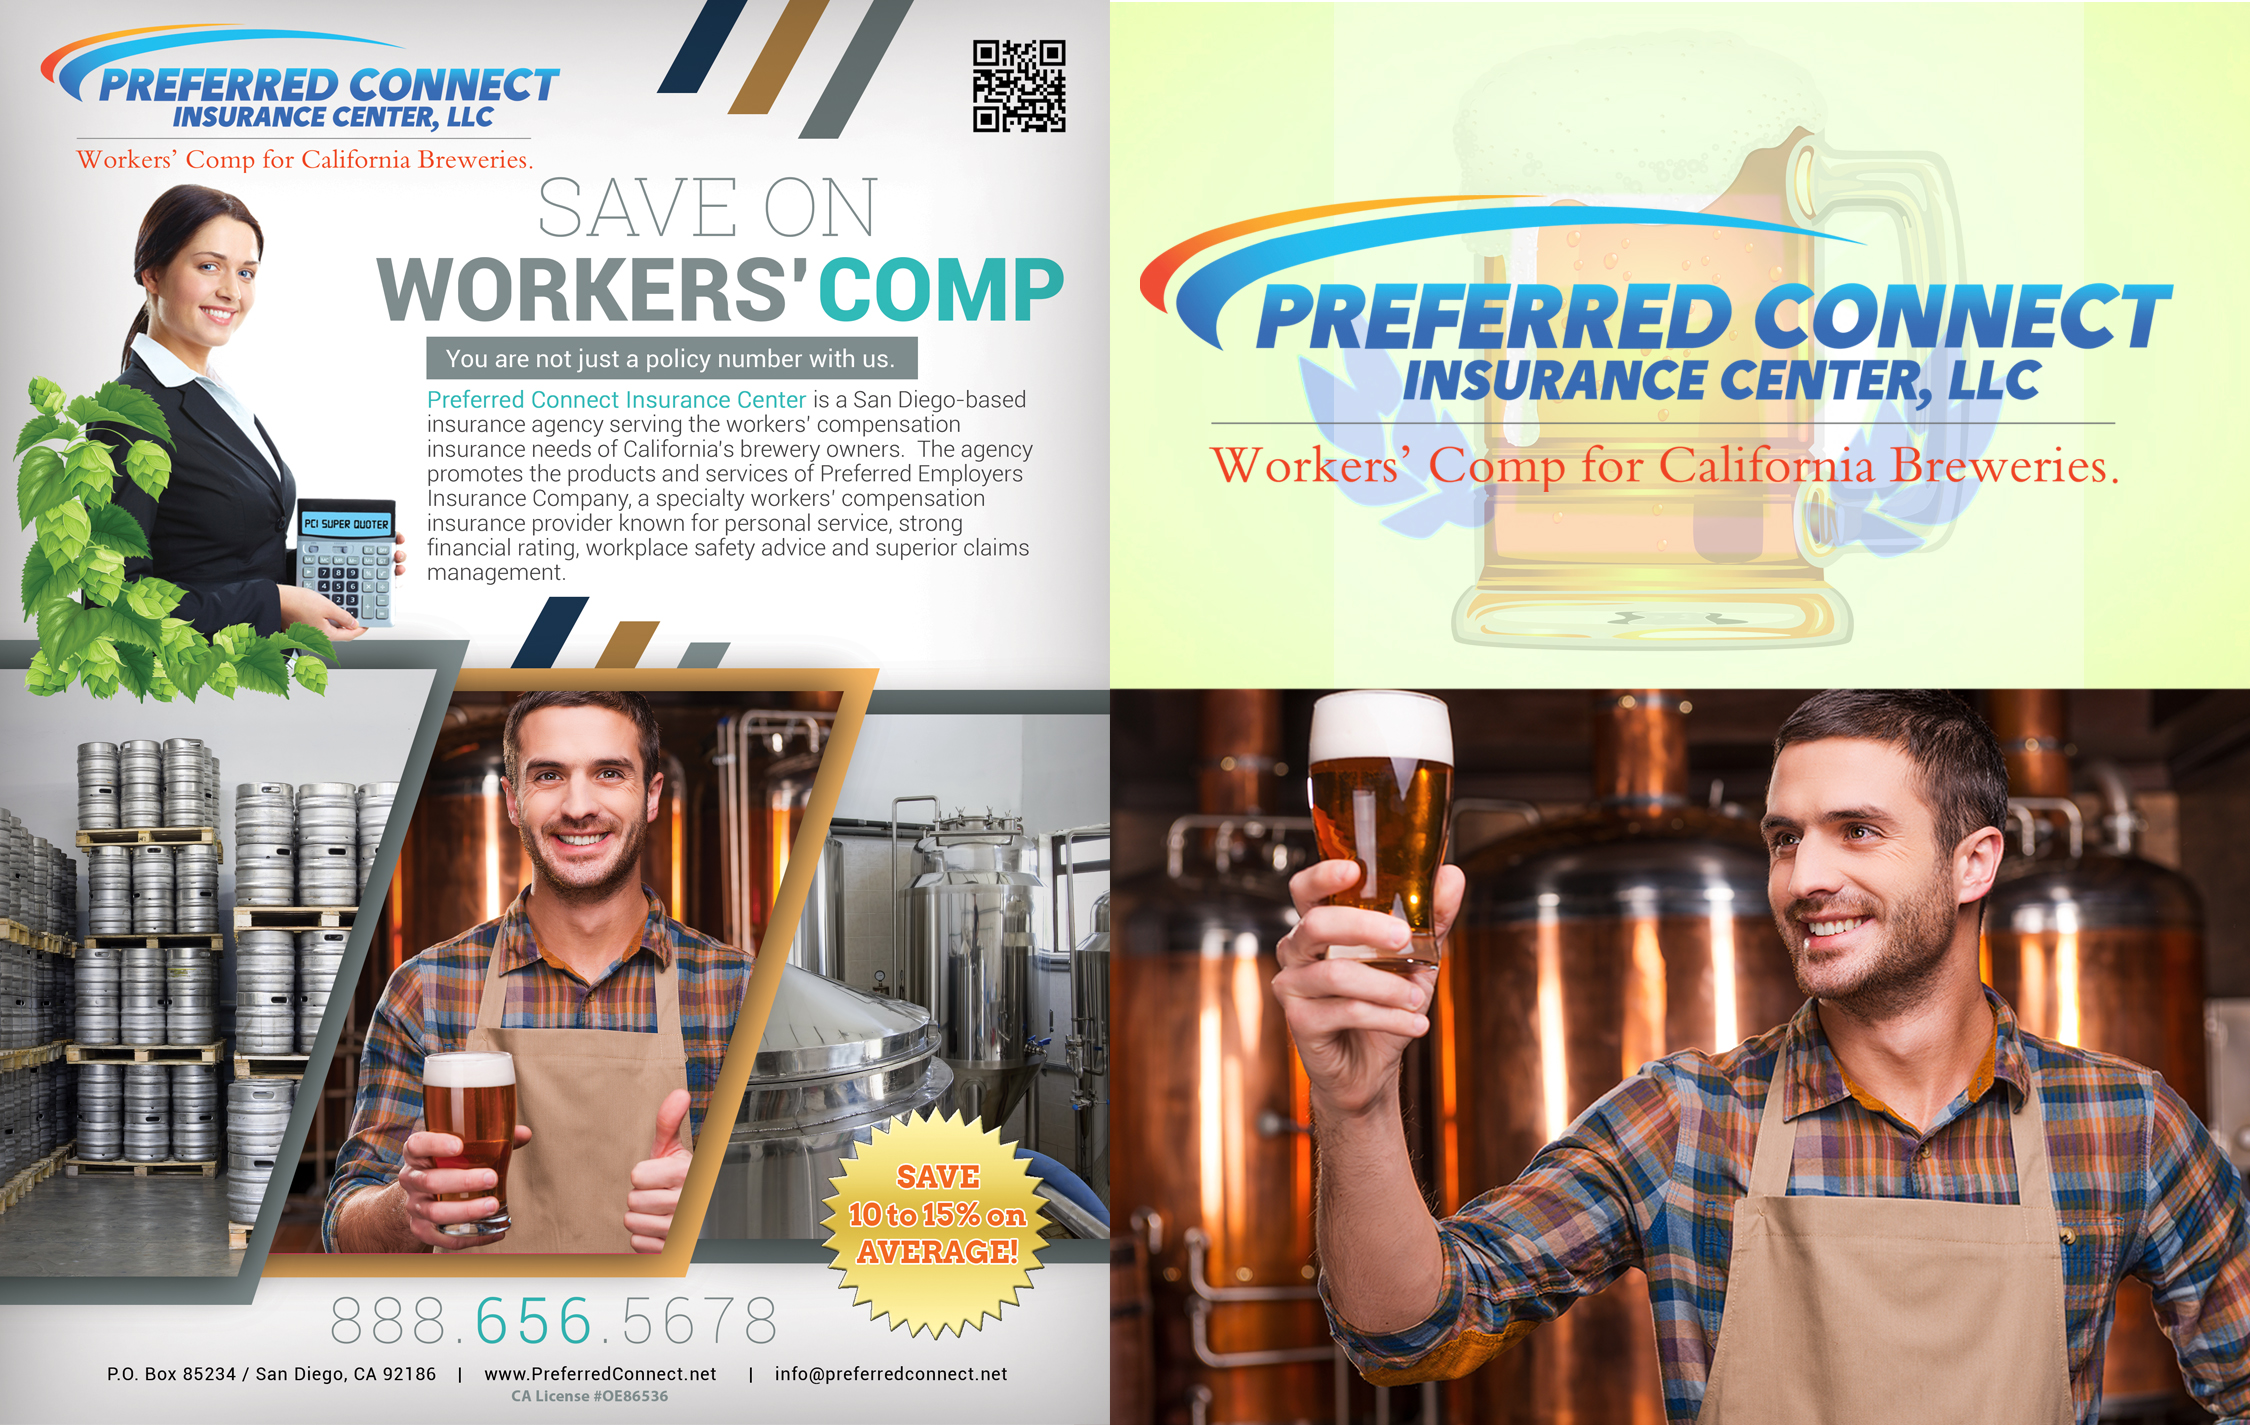 workers comp for breweries flyer